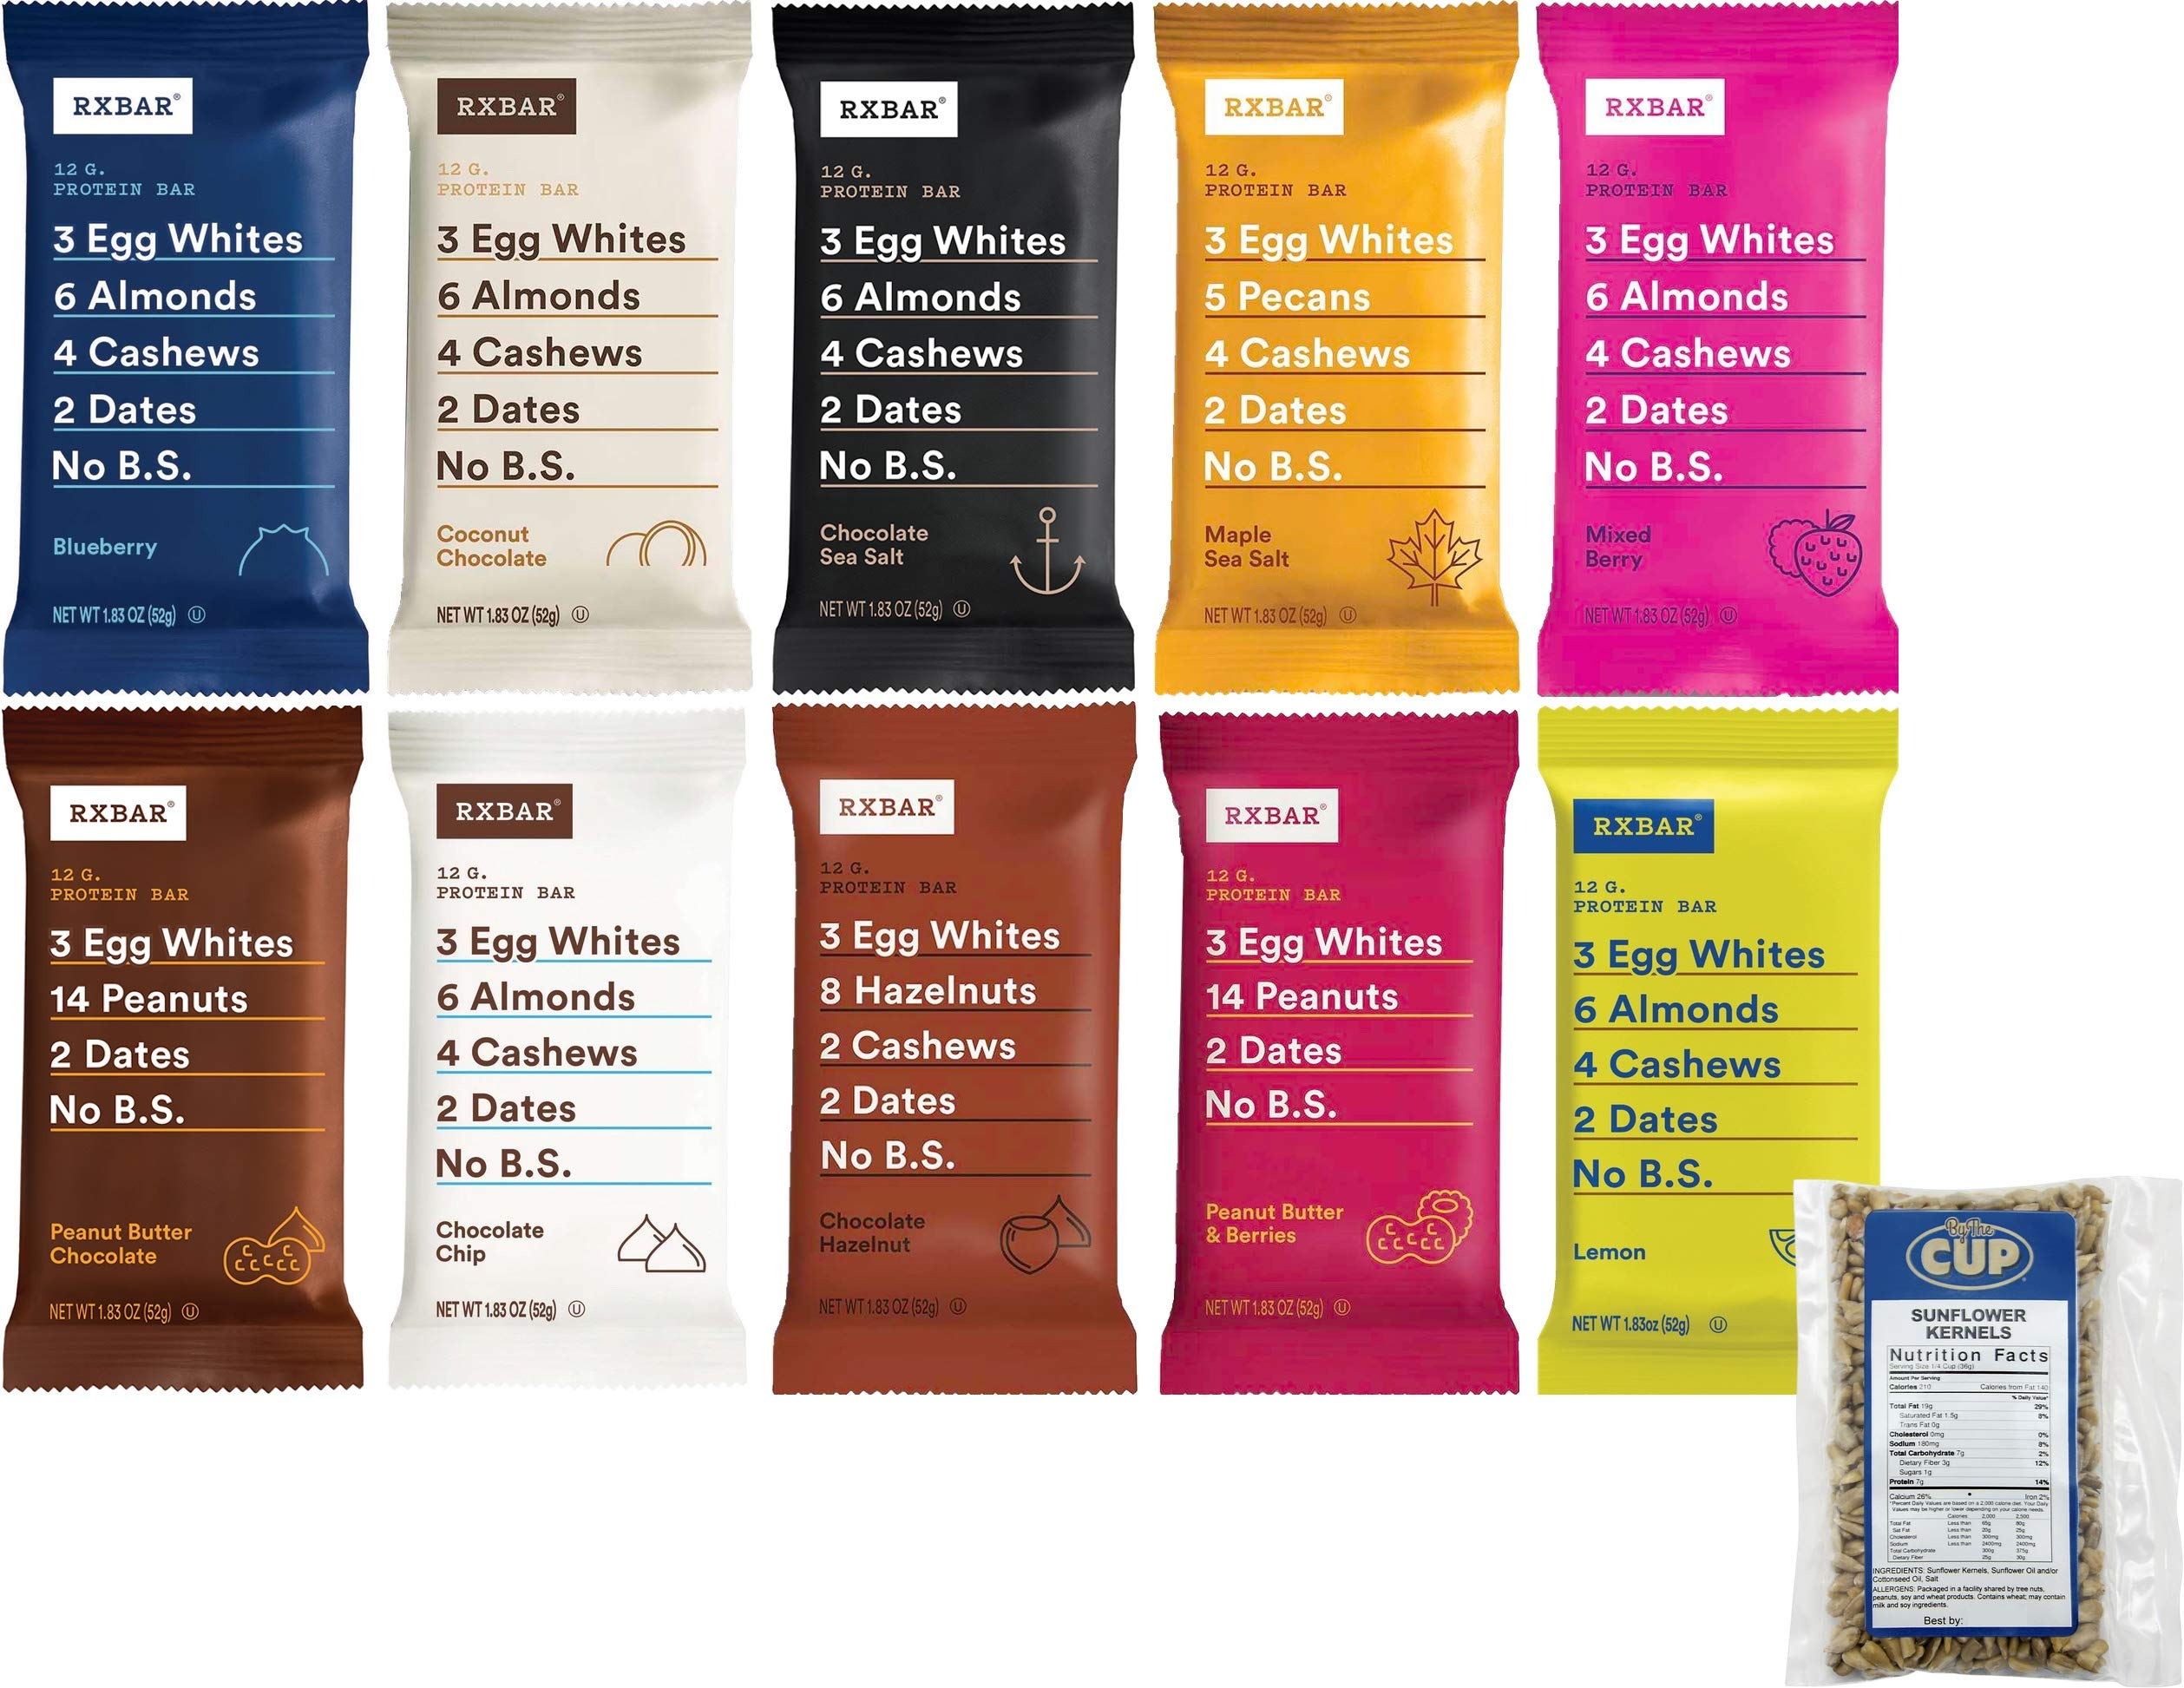 RXBAR No B.S. Protein Bar 10 Flavor Variety Pack, 1 Bar of Each Flavor with By The Cup Sunflower Kernels by By The Cup